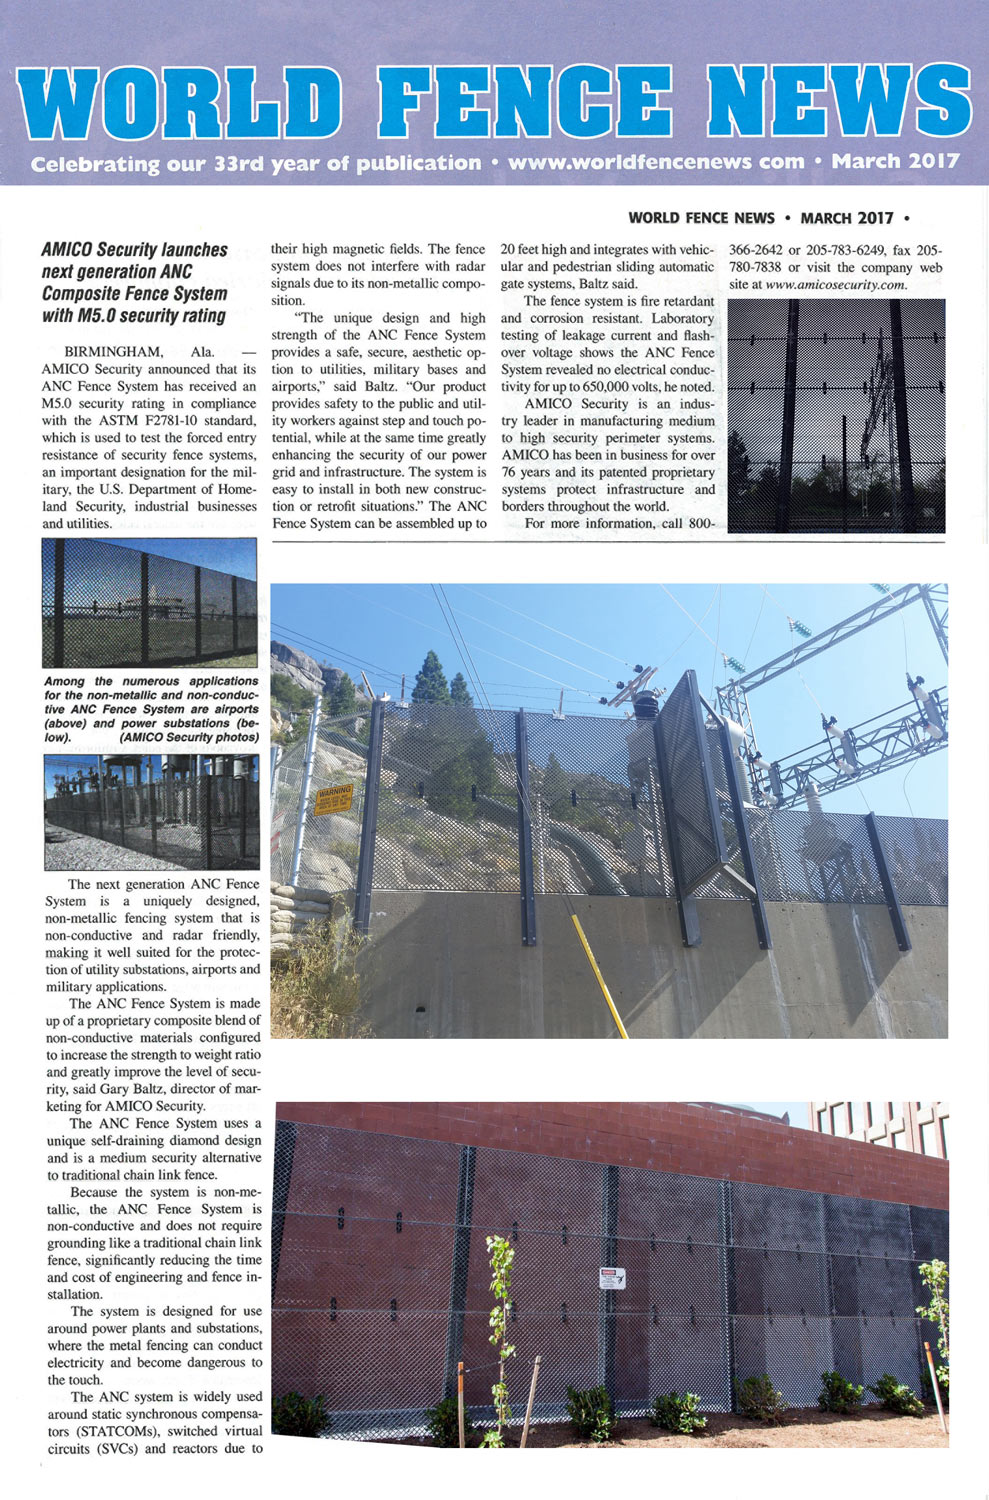 World Fence News Features AMICO Security and Composite Fence System